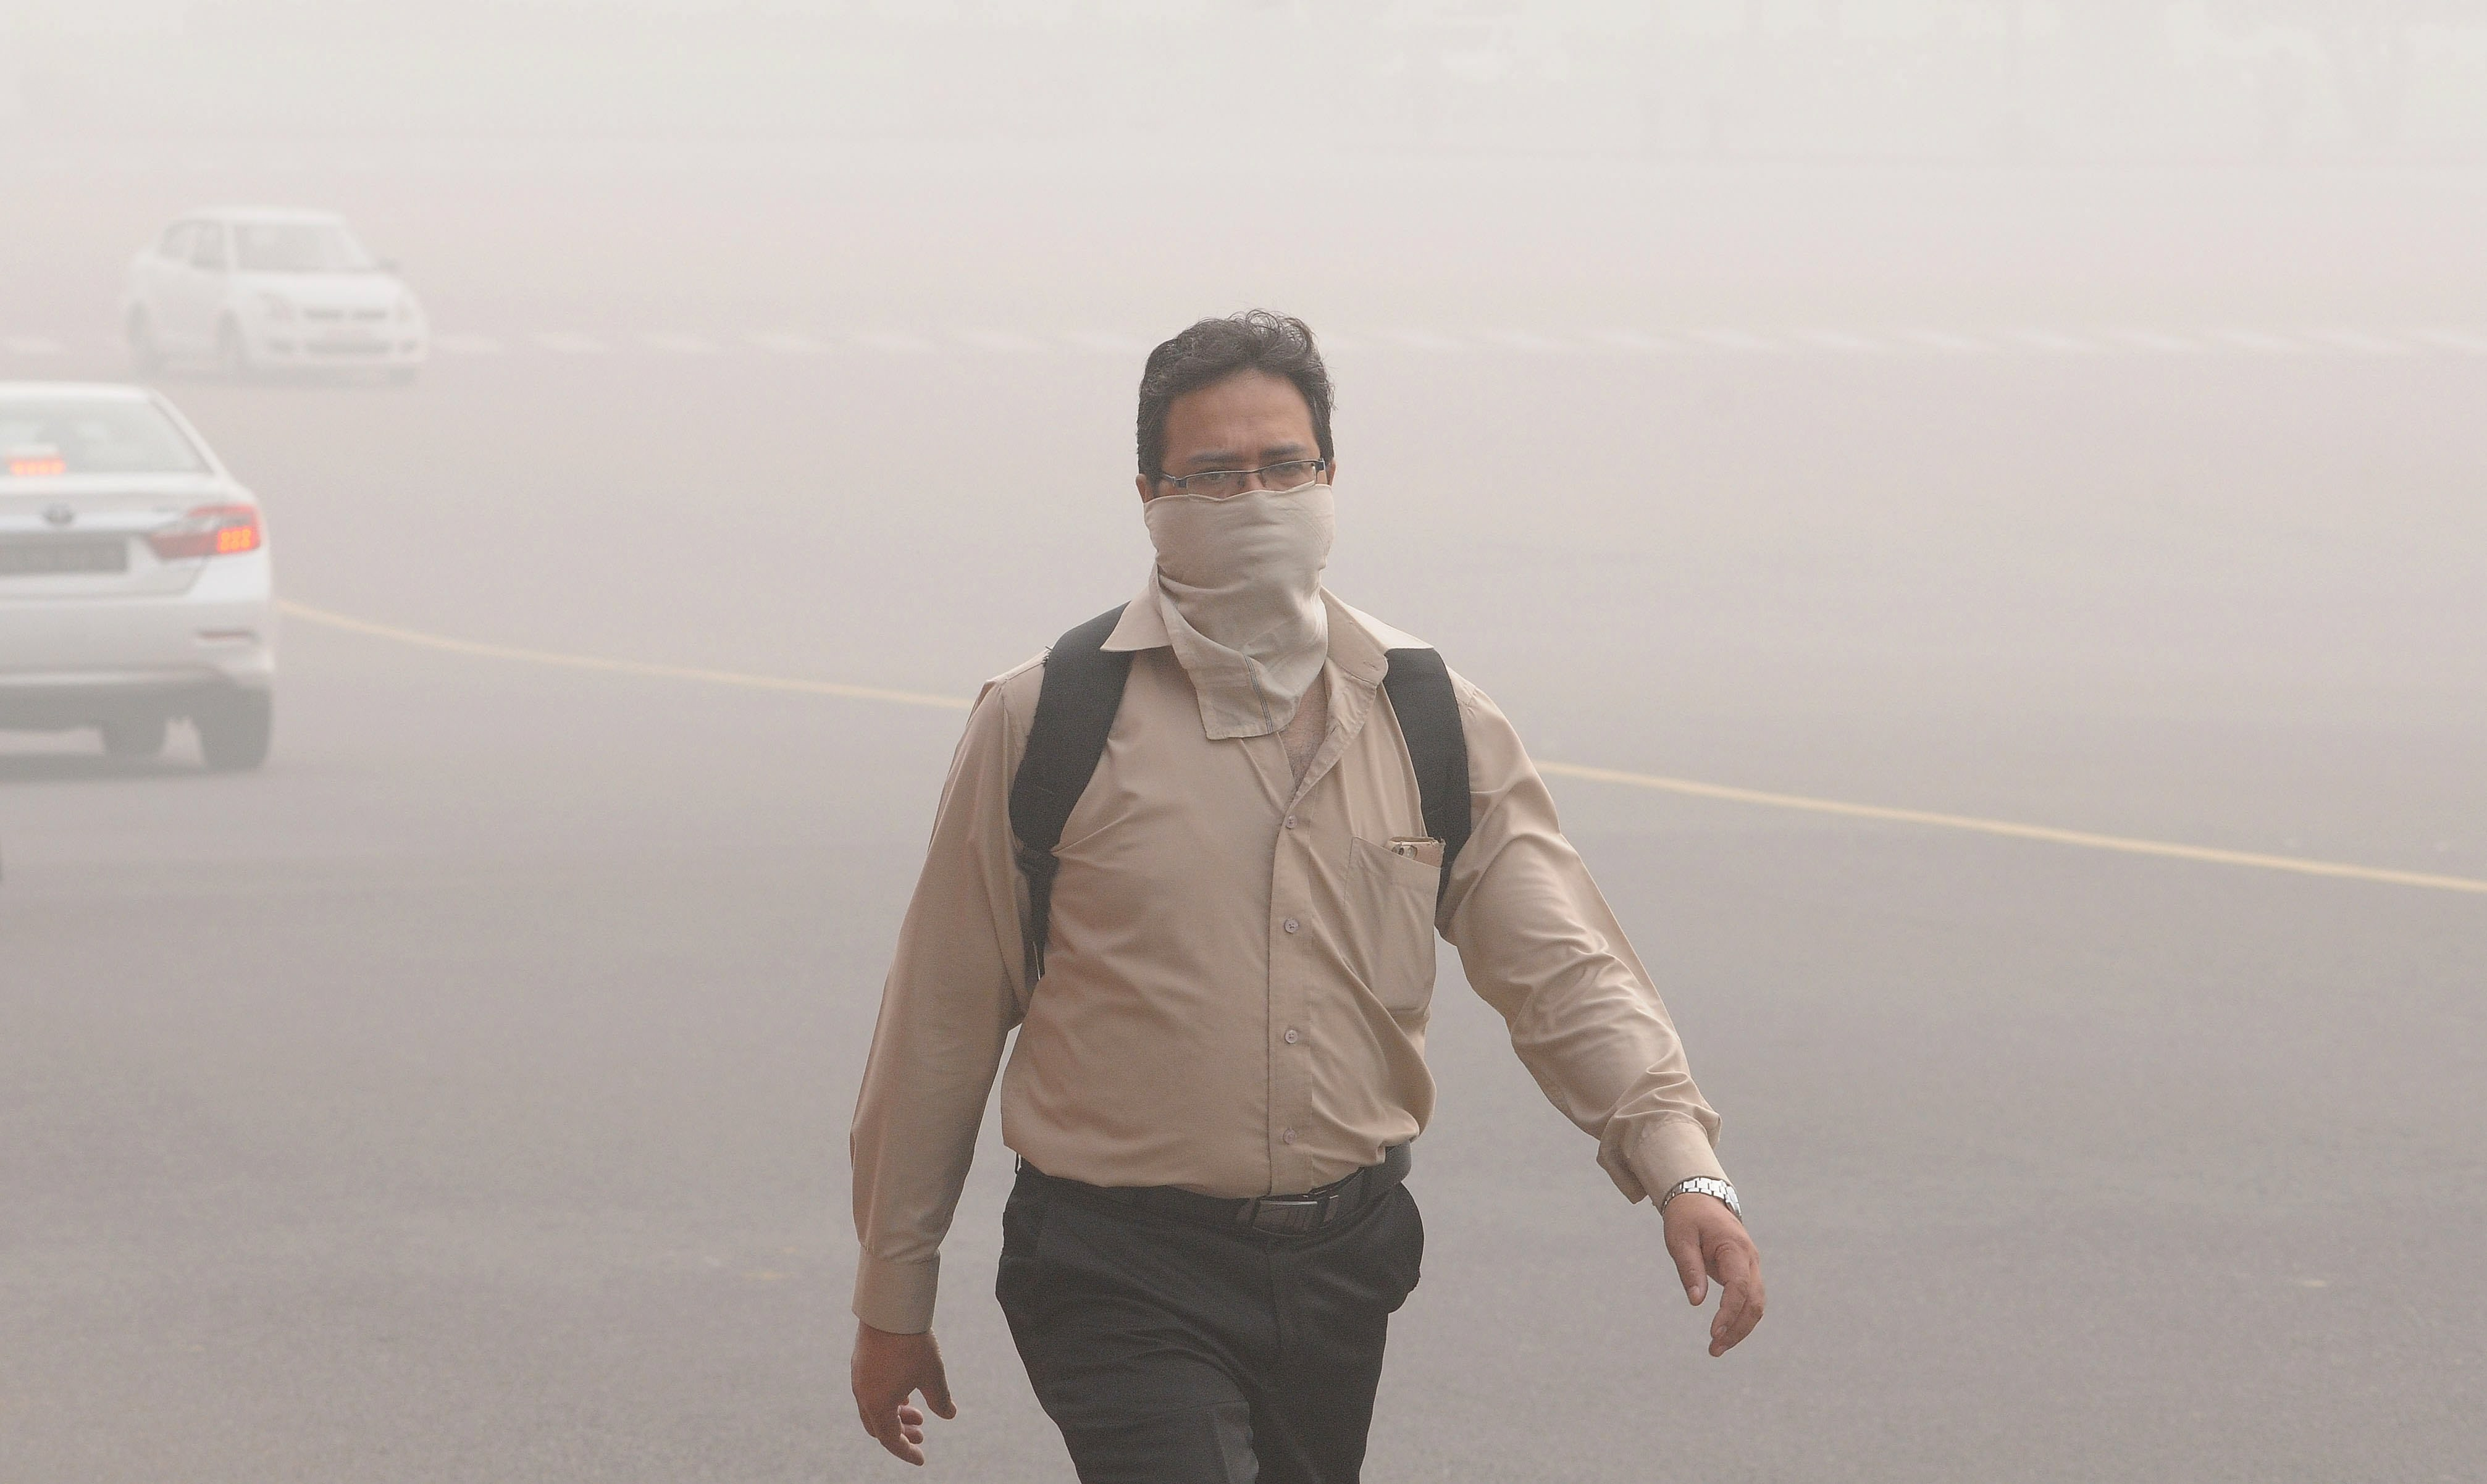 An Indian man with his face covered walks in New Delhi.